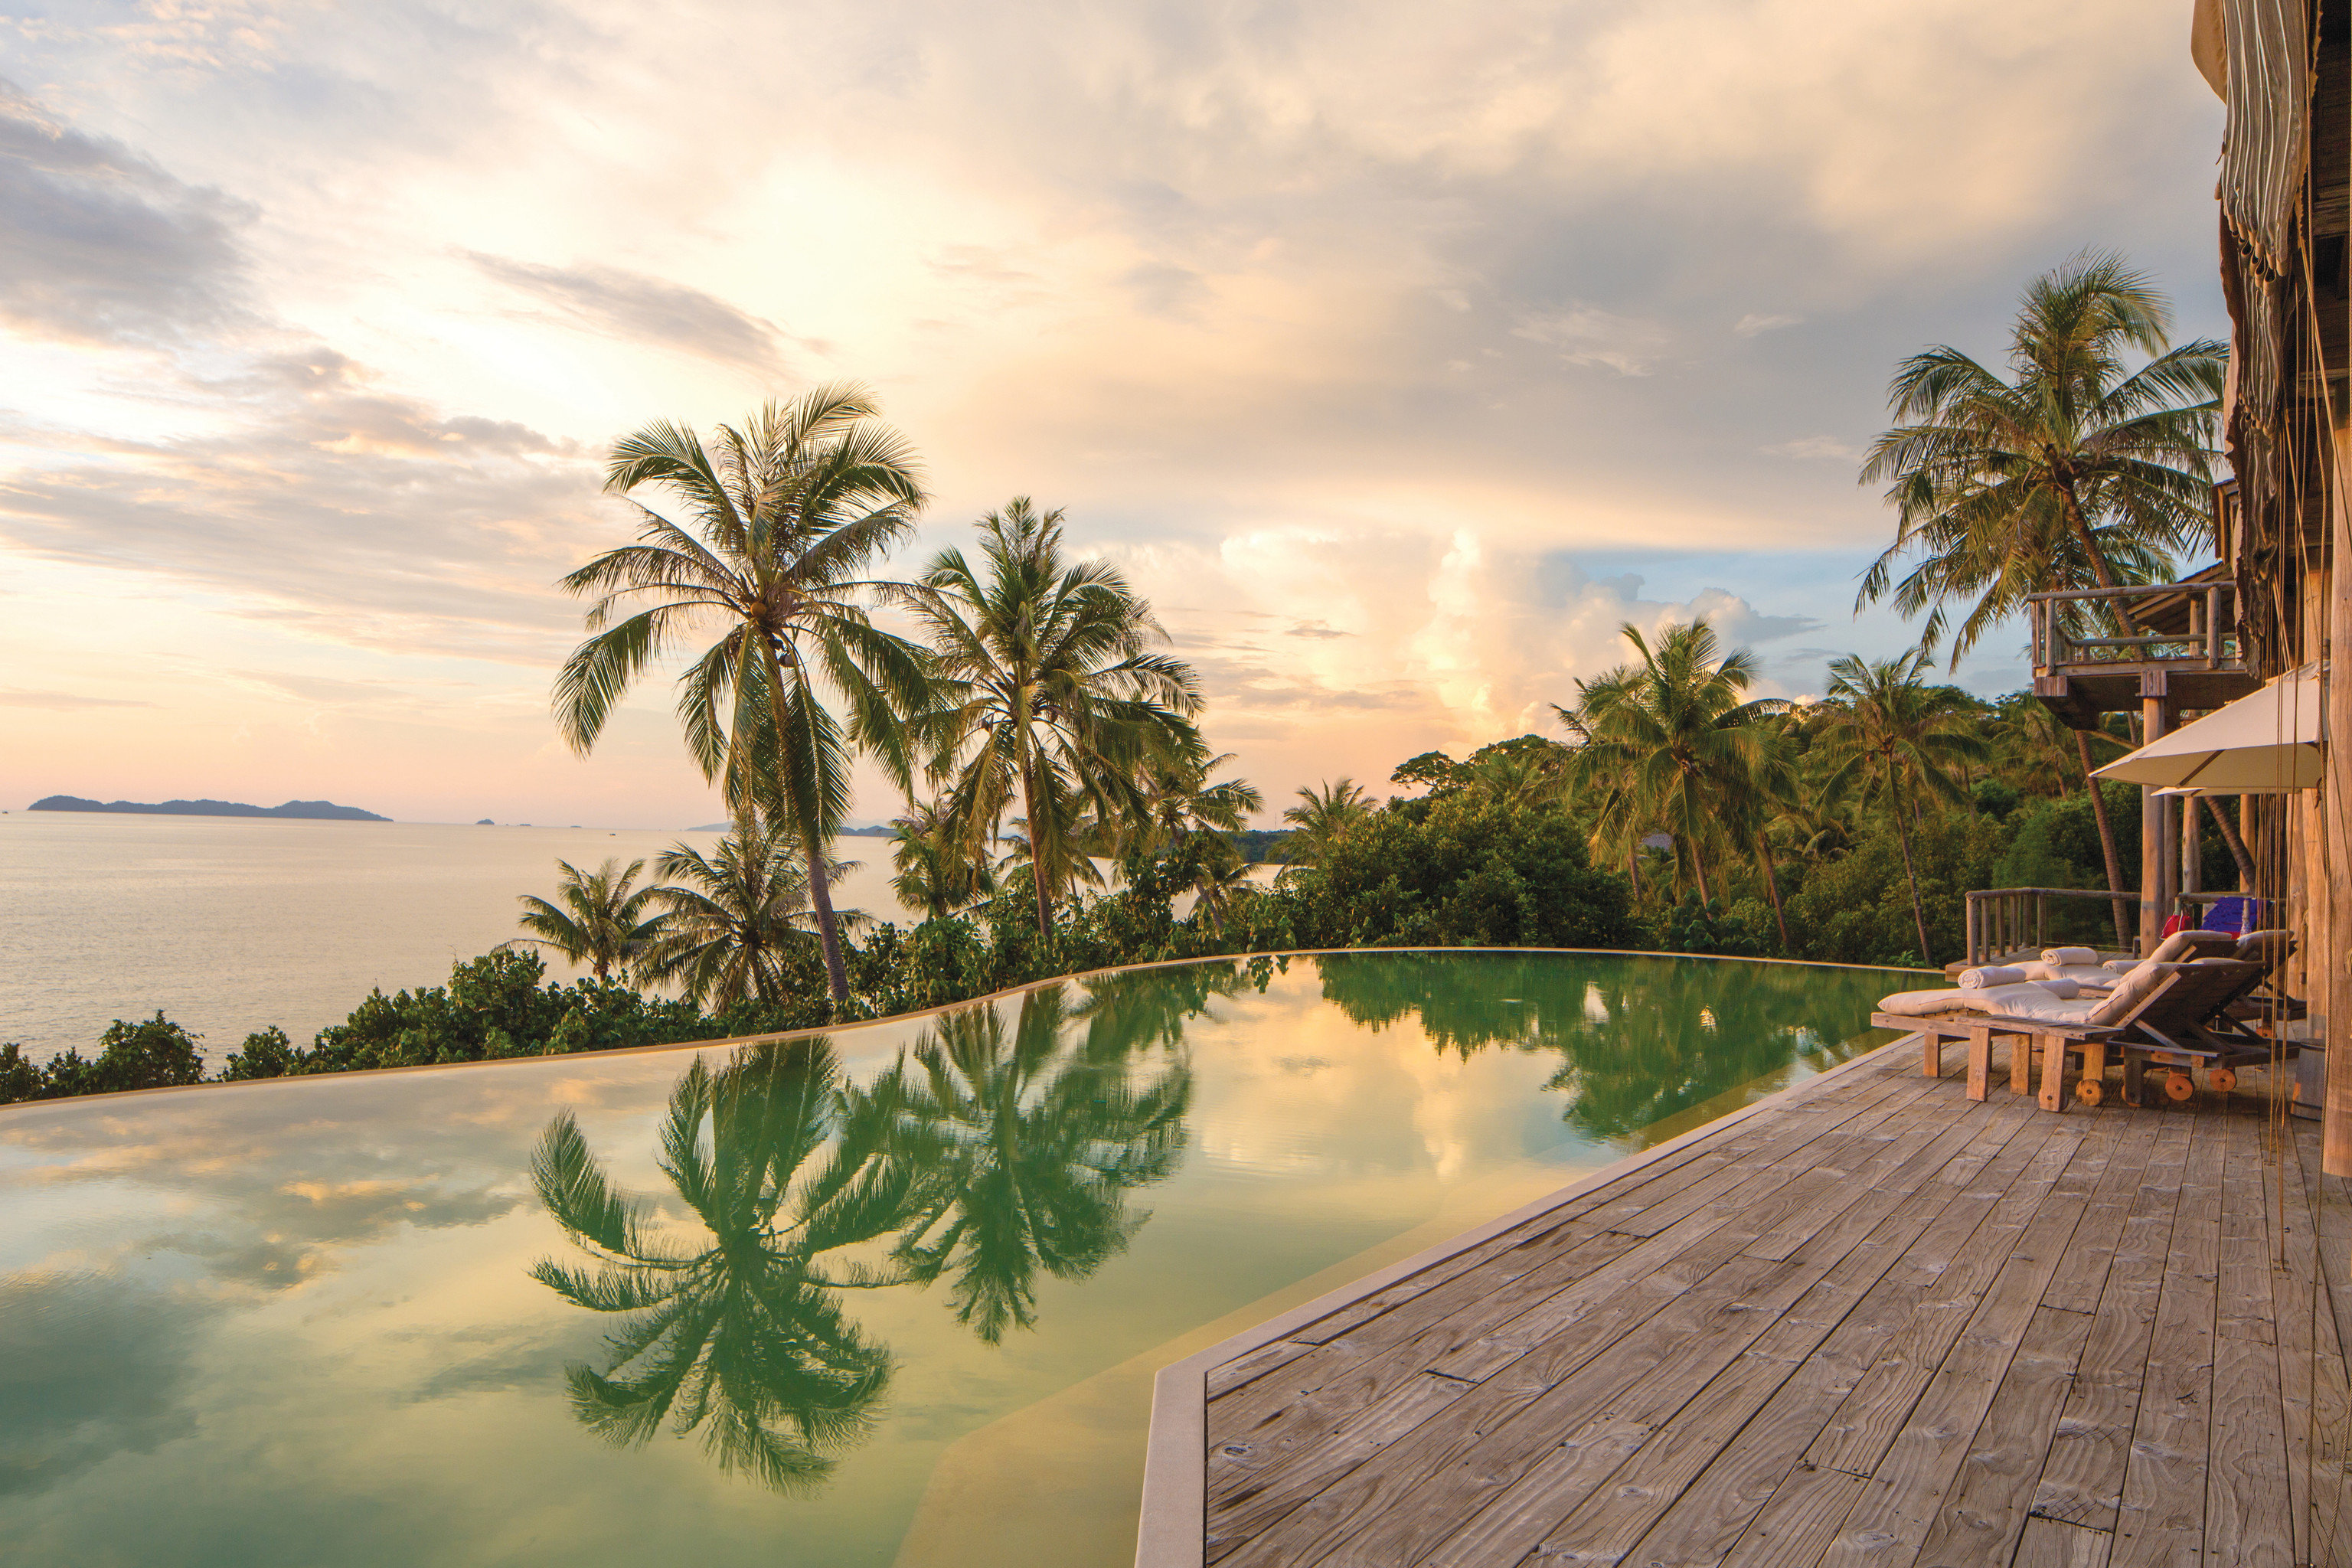 Hotels sky outdoor tree water Beach vacation Sea shore Ocean River arecales Coast bay landscape estate tropics caribbean Resort palm family Lake palm Sunset plant overlooking